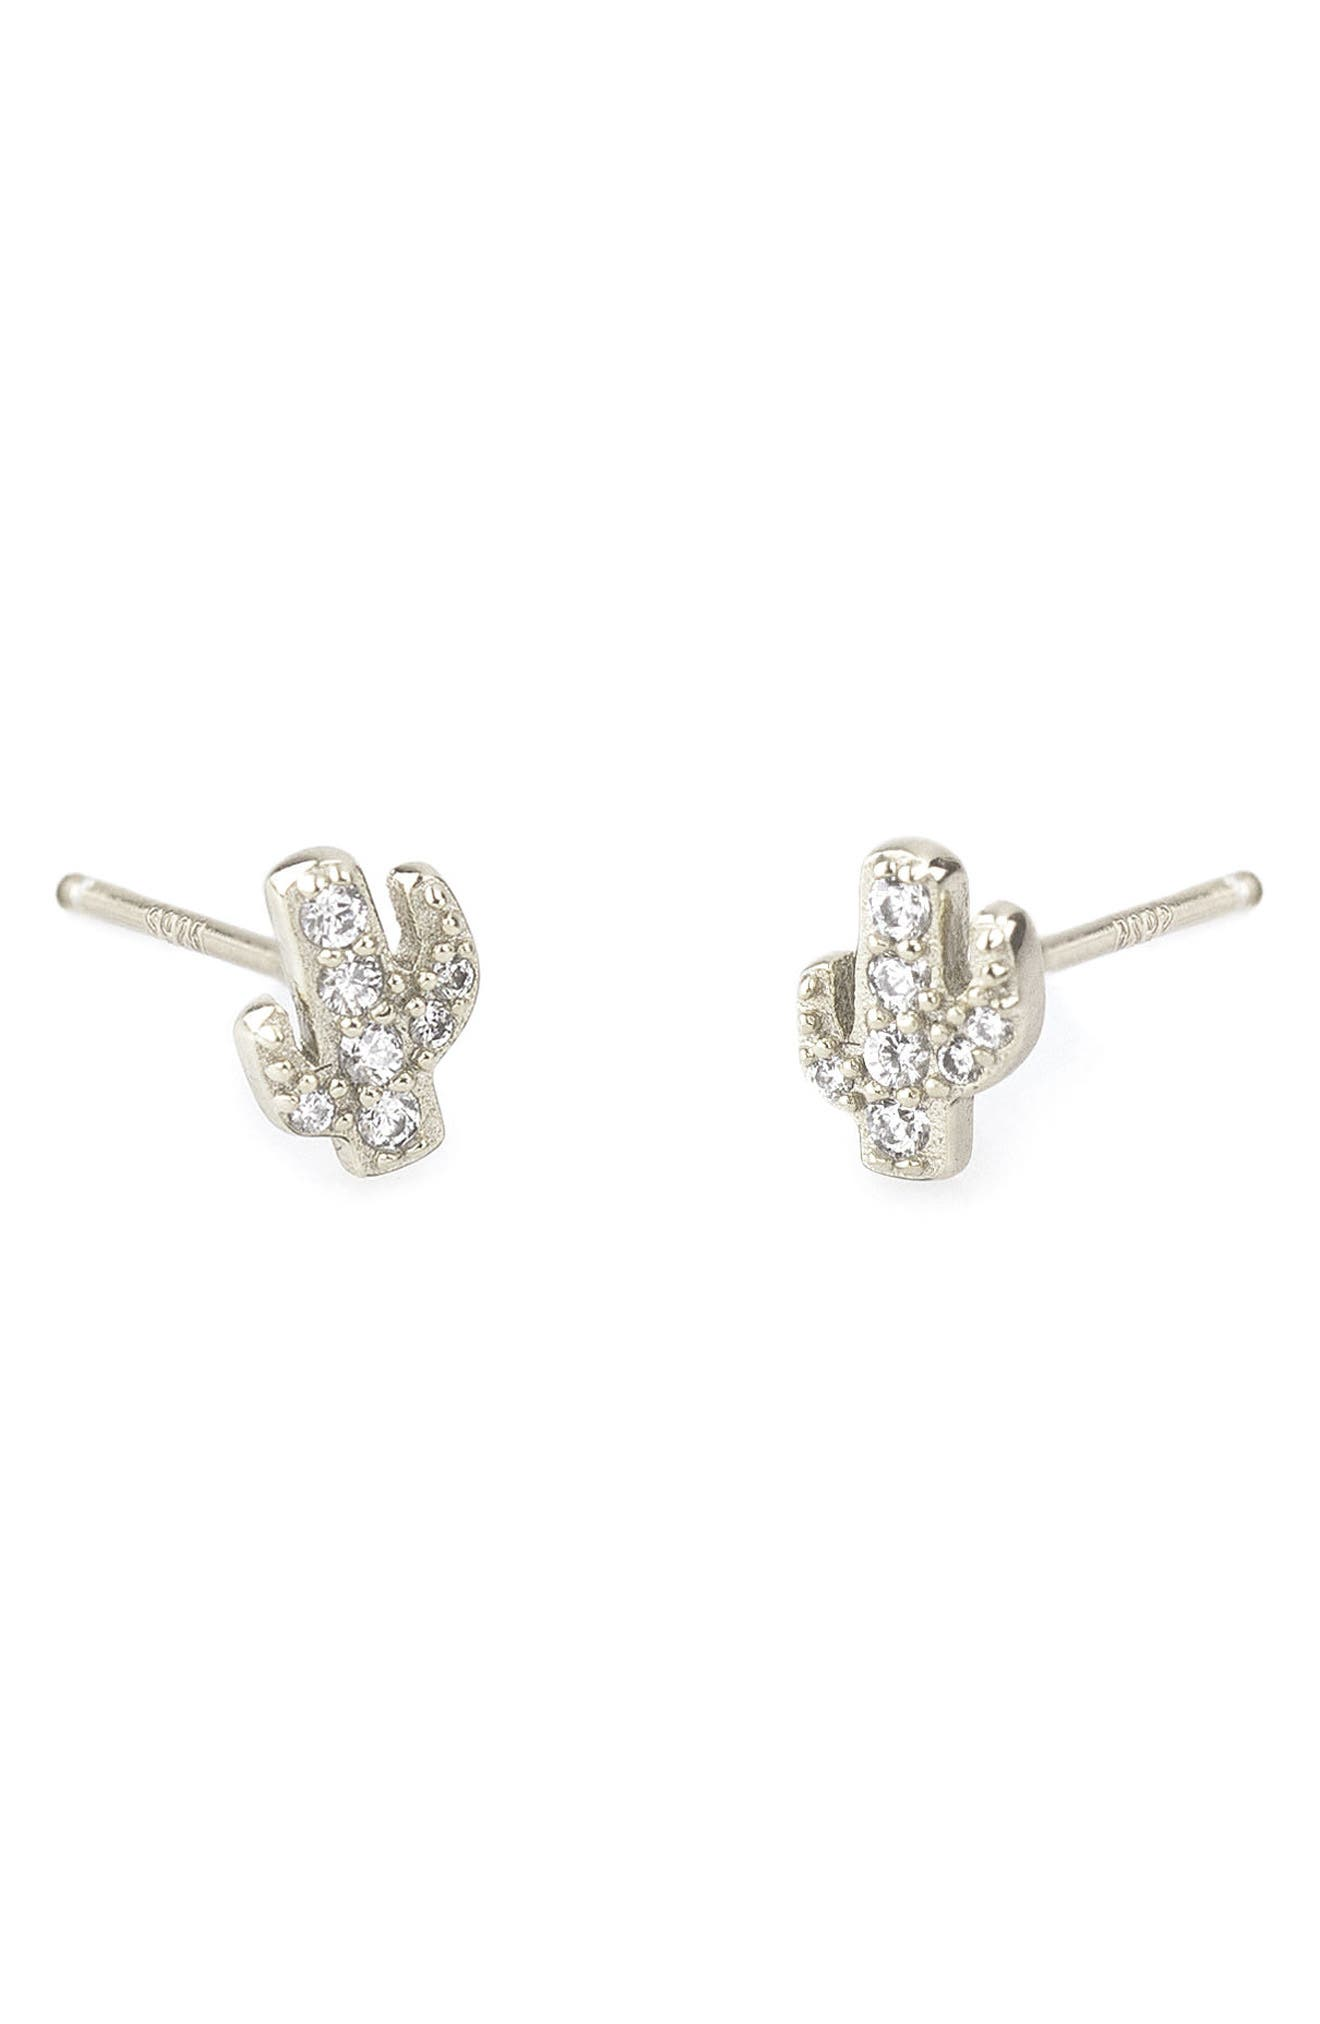 Kris Nations Pavé Cactus Stud Earrings